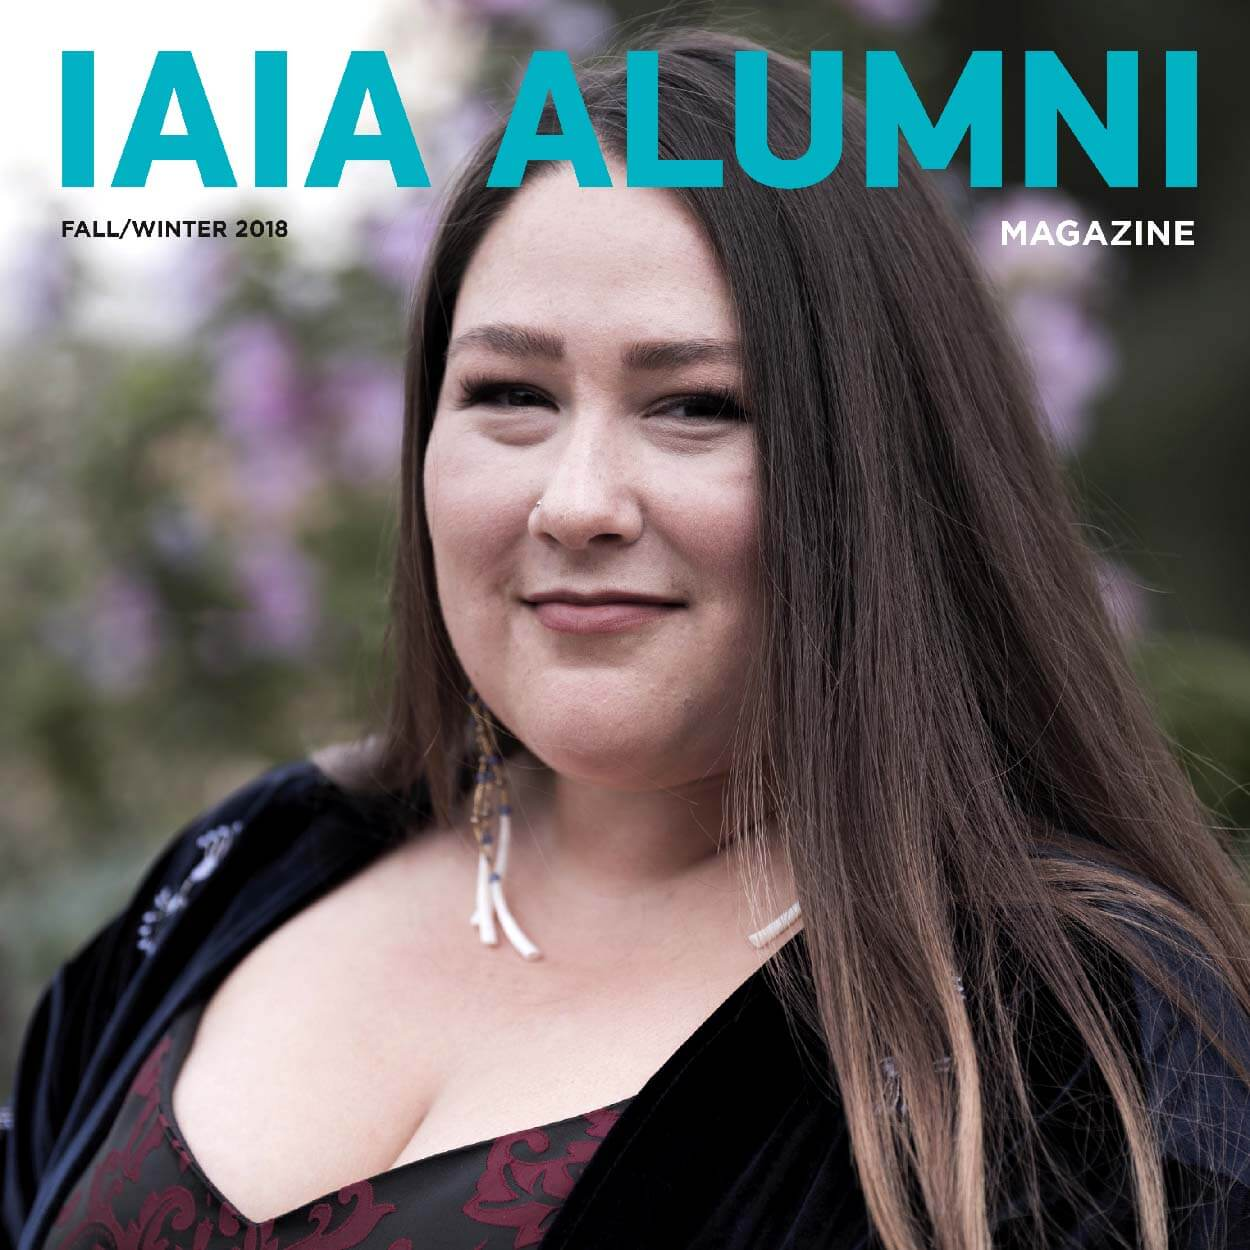 2018 Fall/Winter Alumni Magazine